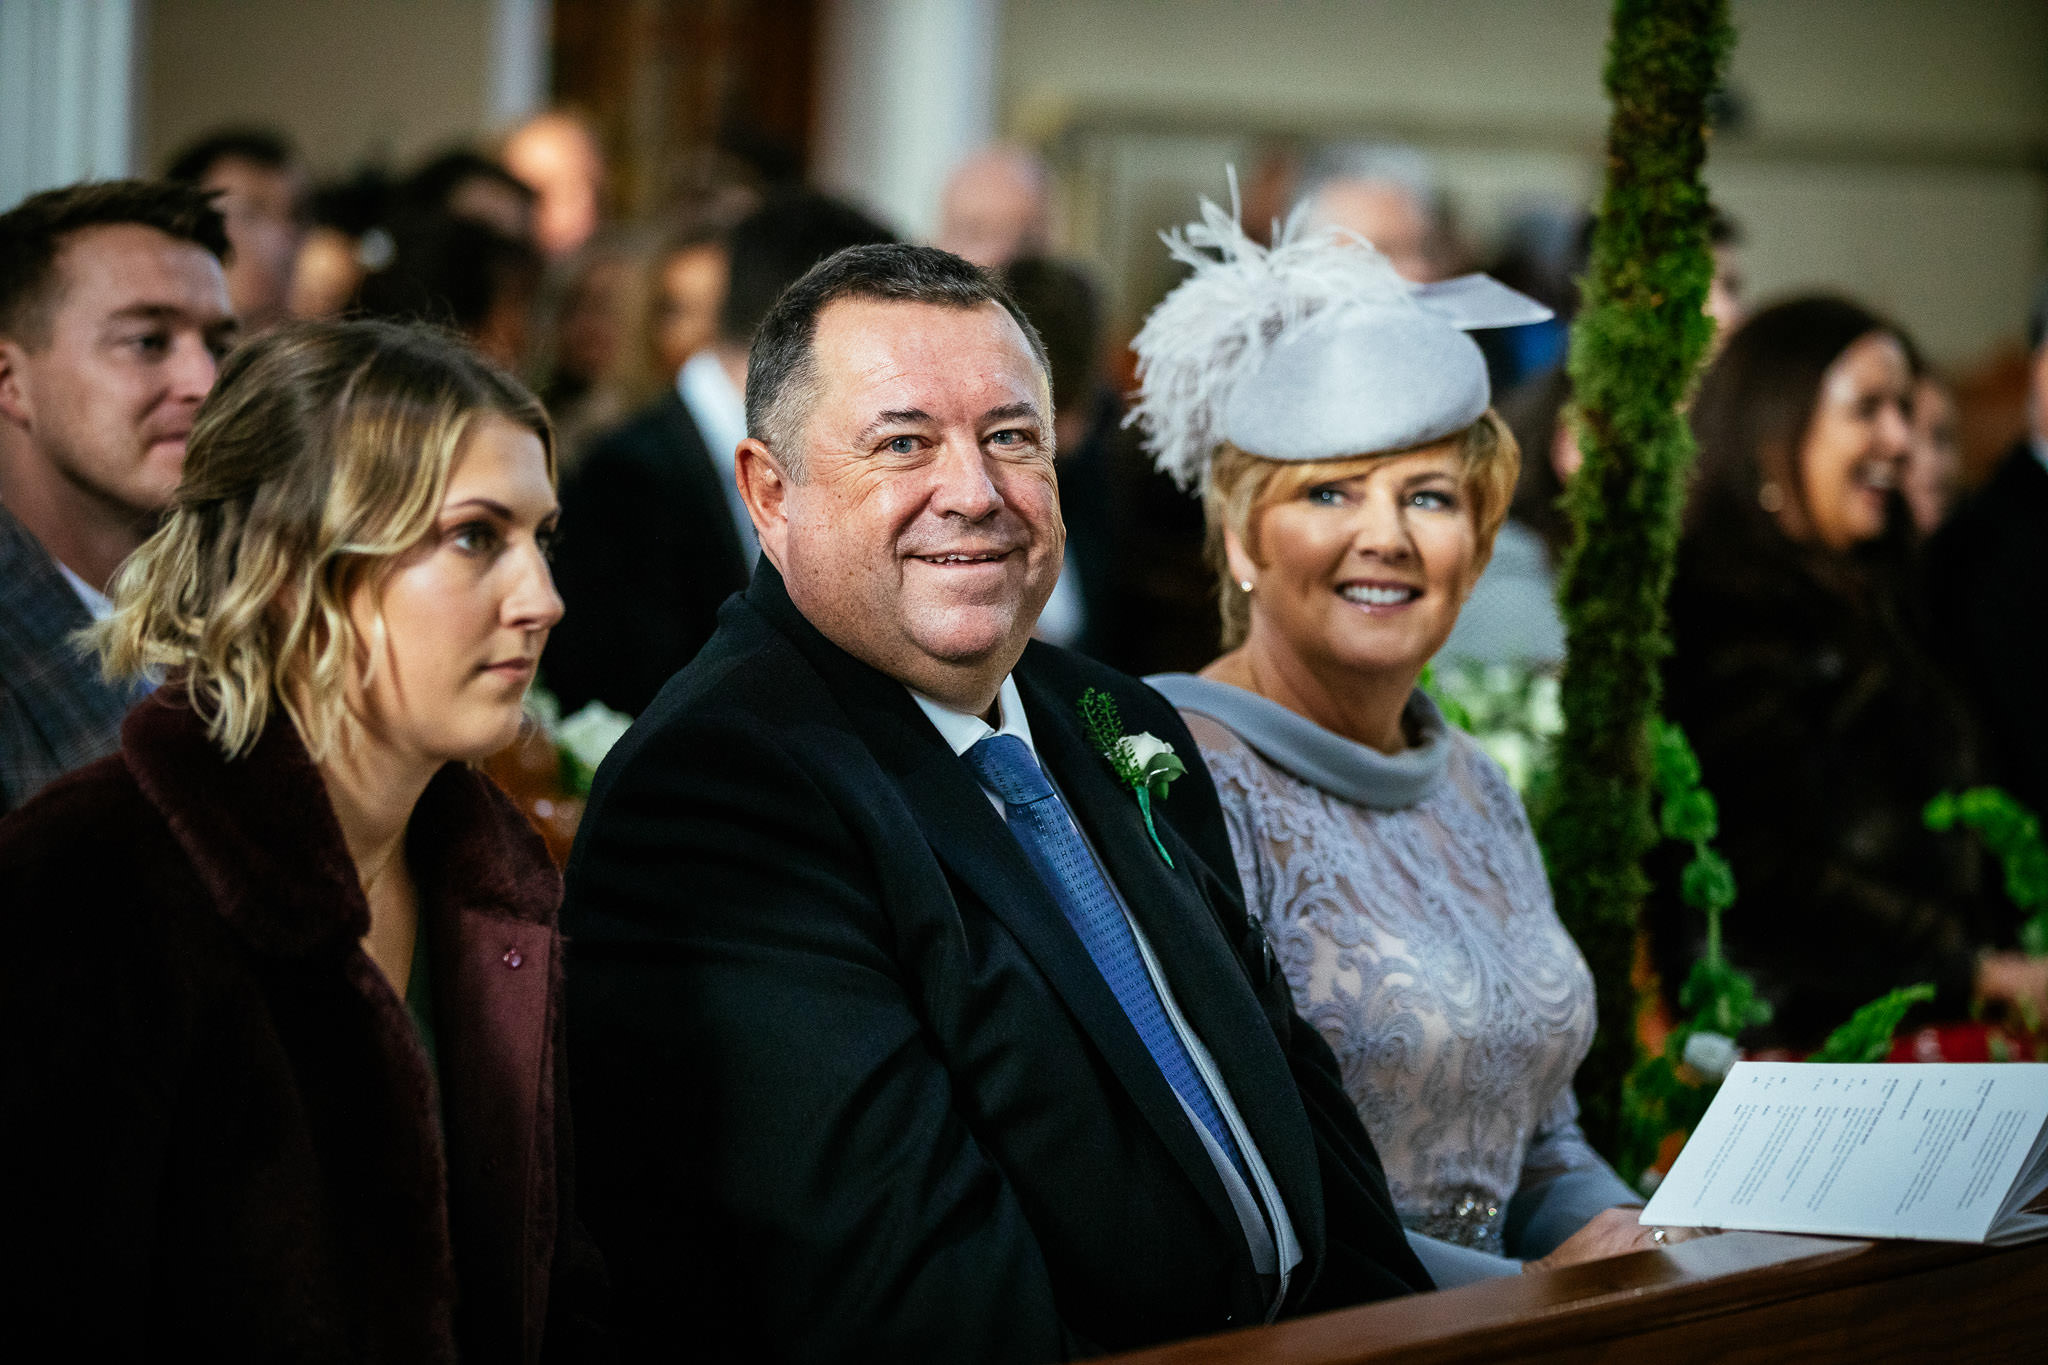 grooms family laughing during wedding ceremony at St Brigid's Church Oldcastle